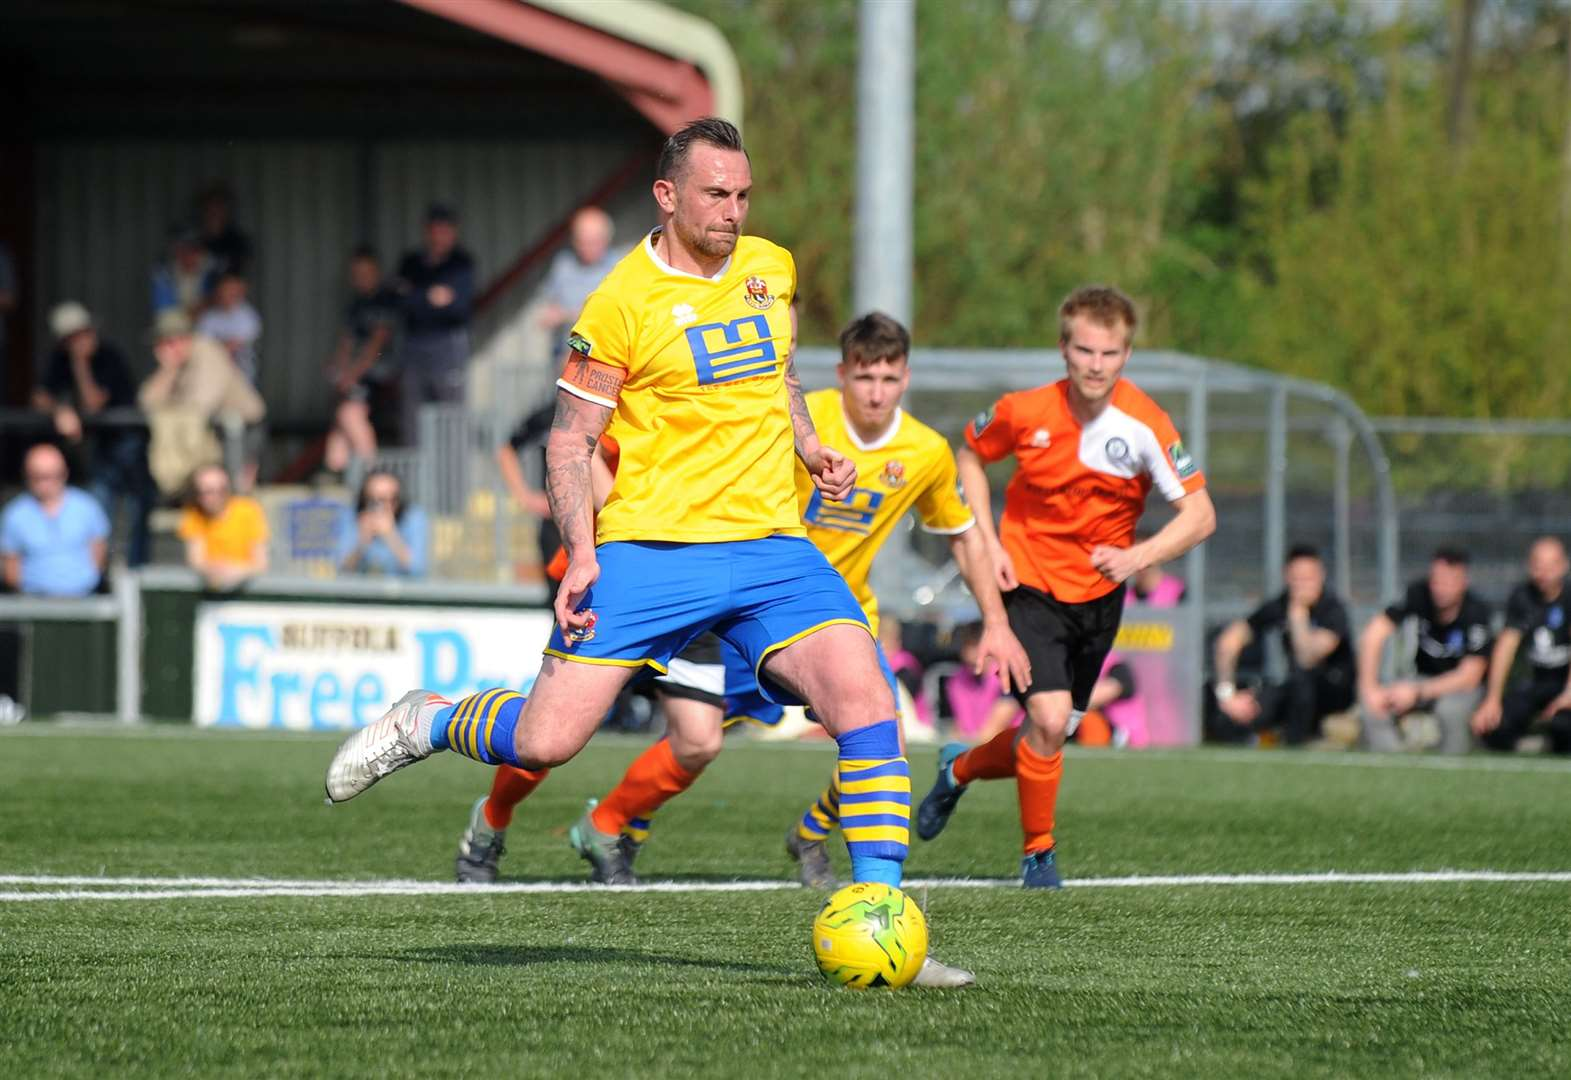 BOSTIK LEAGUE: AFC's Hayes announces retirement